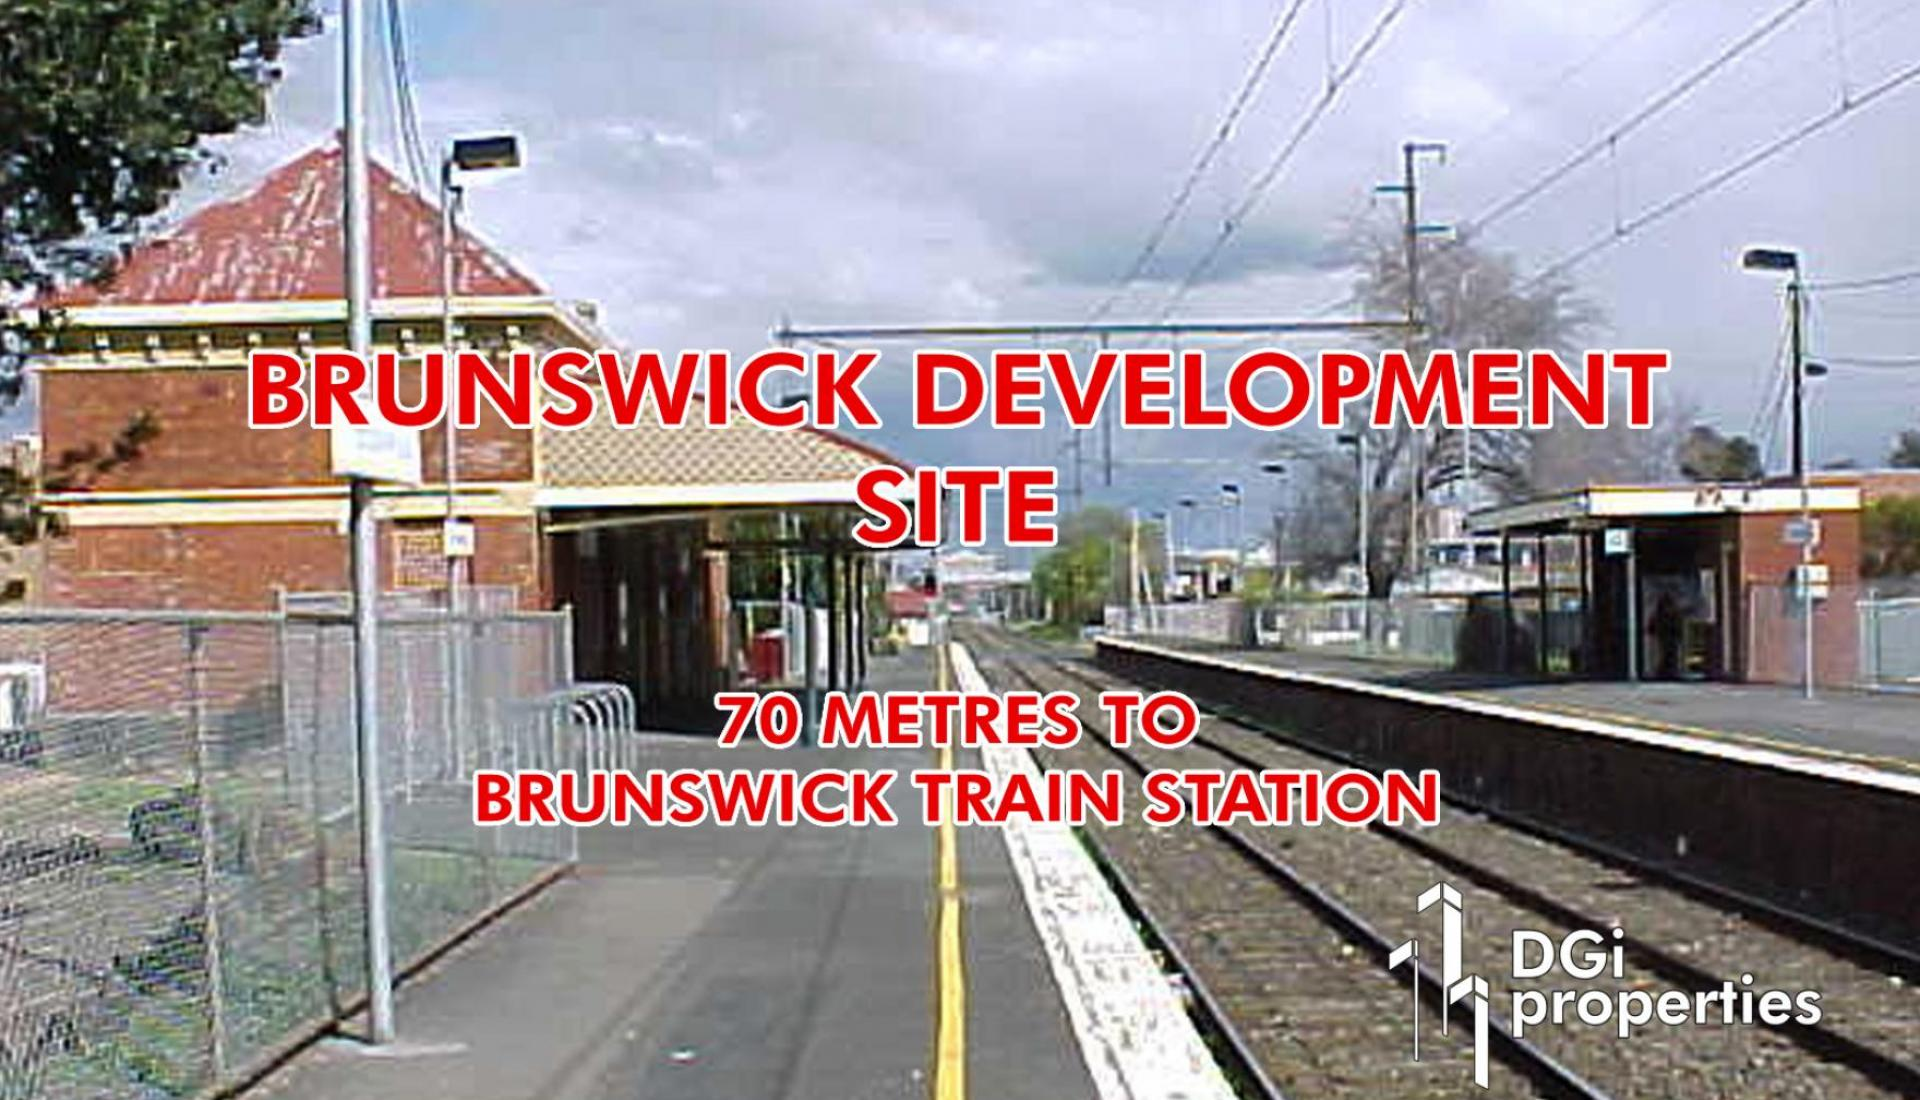 BRUNSWICK DEVELOPMENT SITE WITH PLANS AND PERMIT